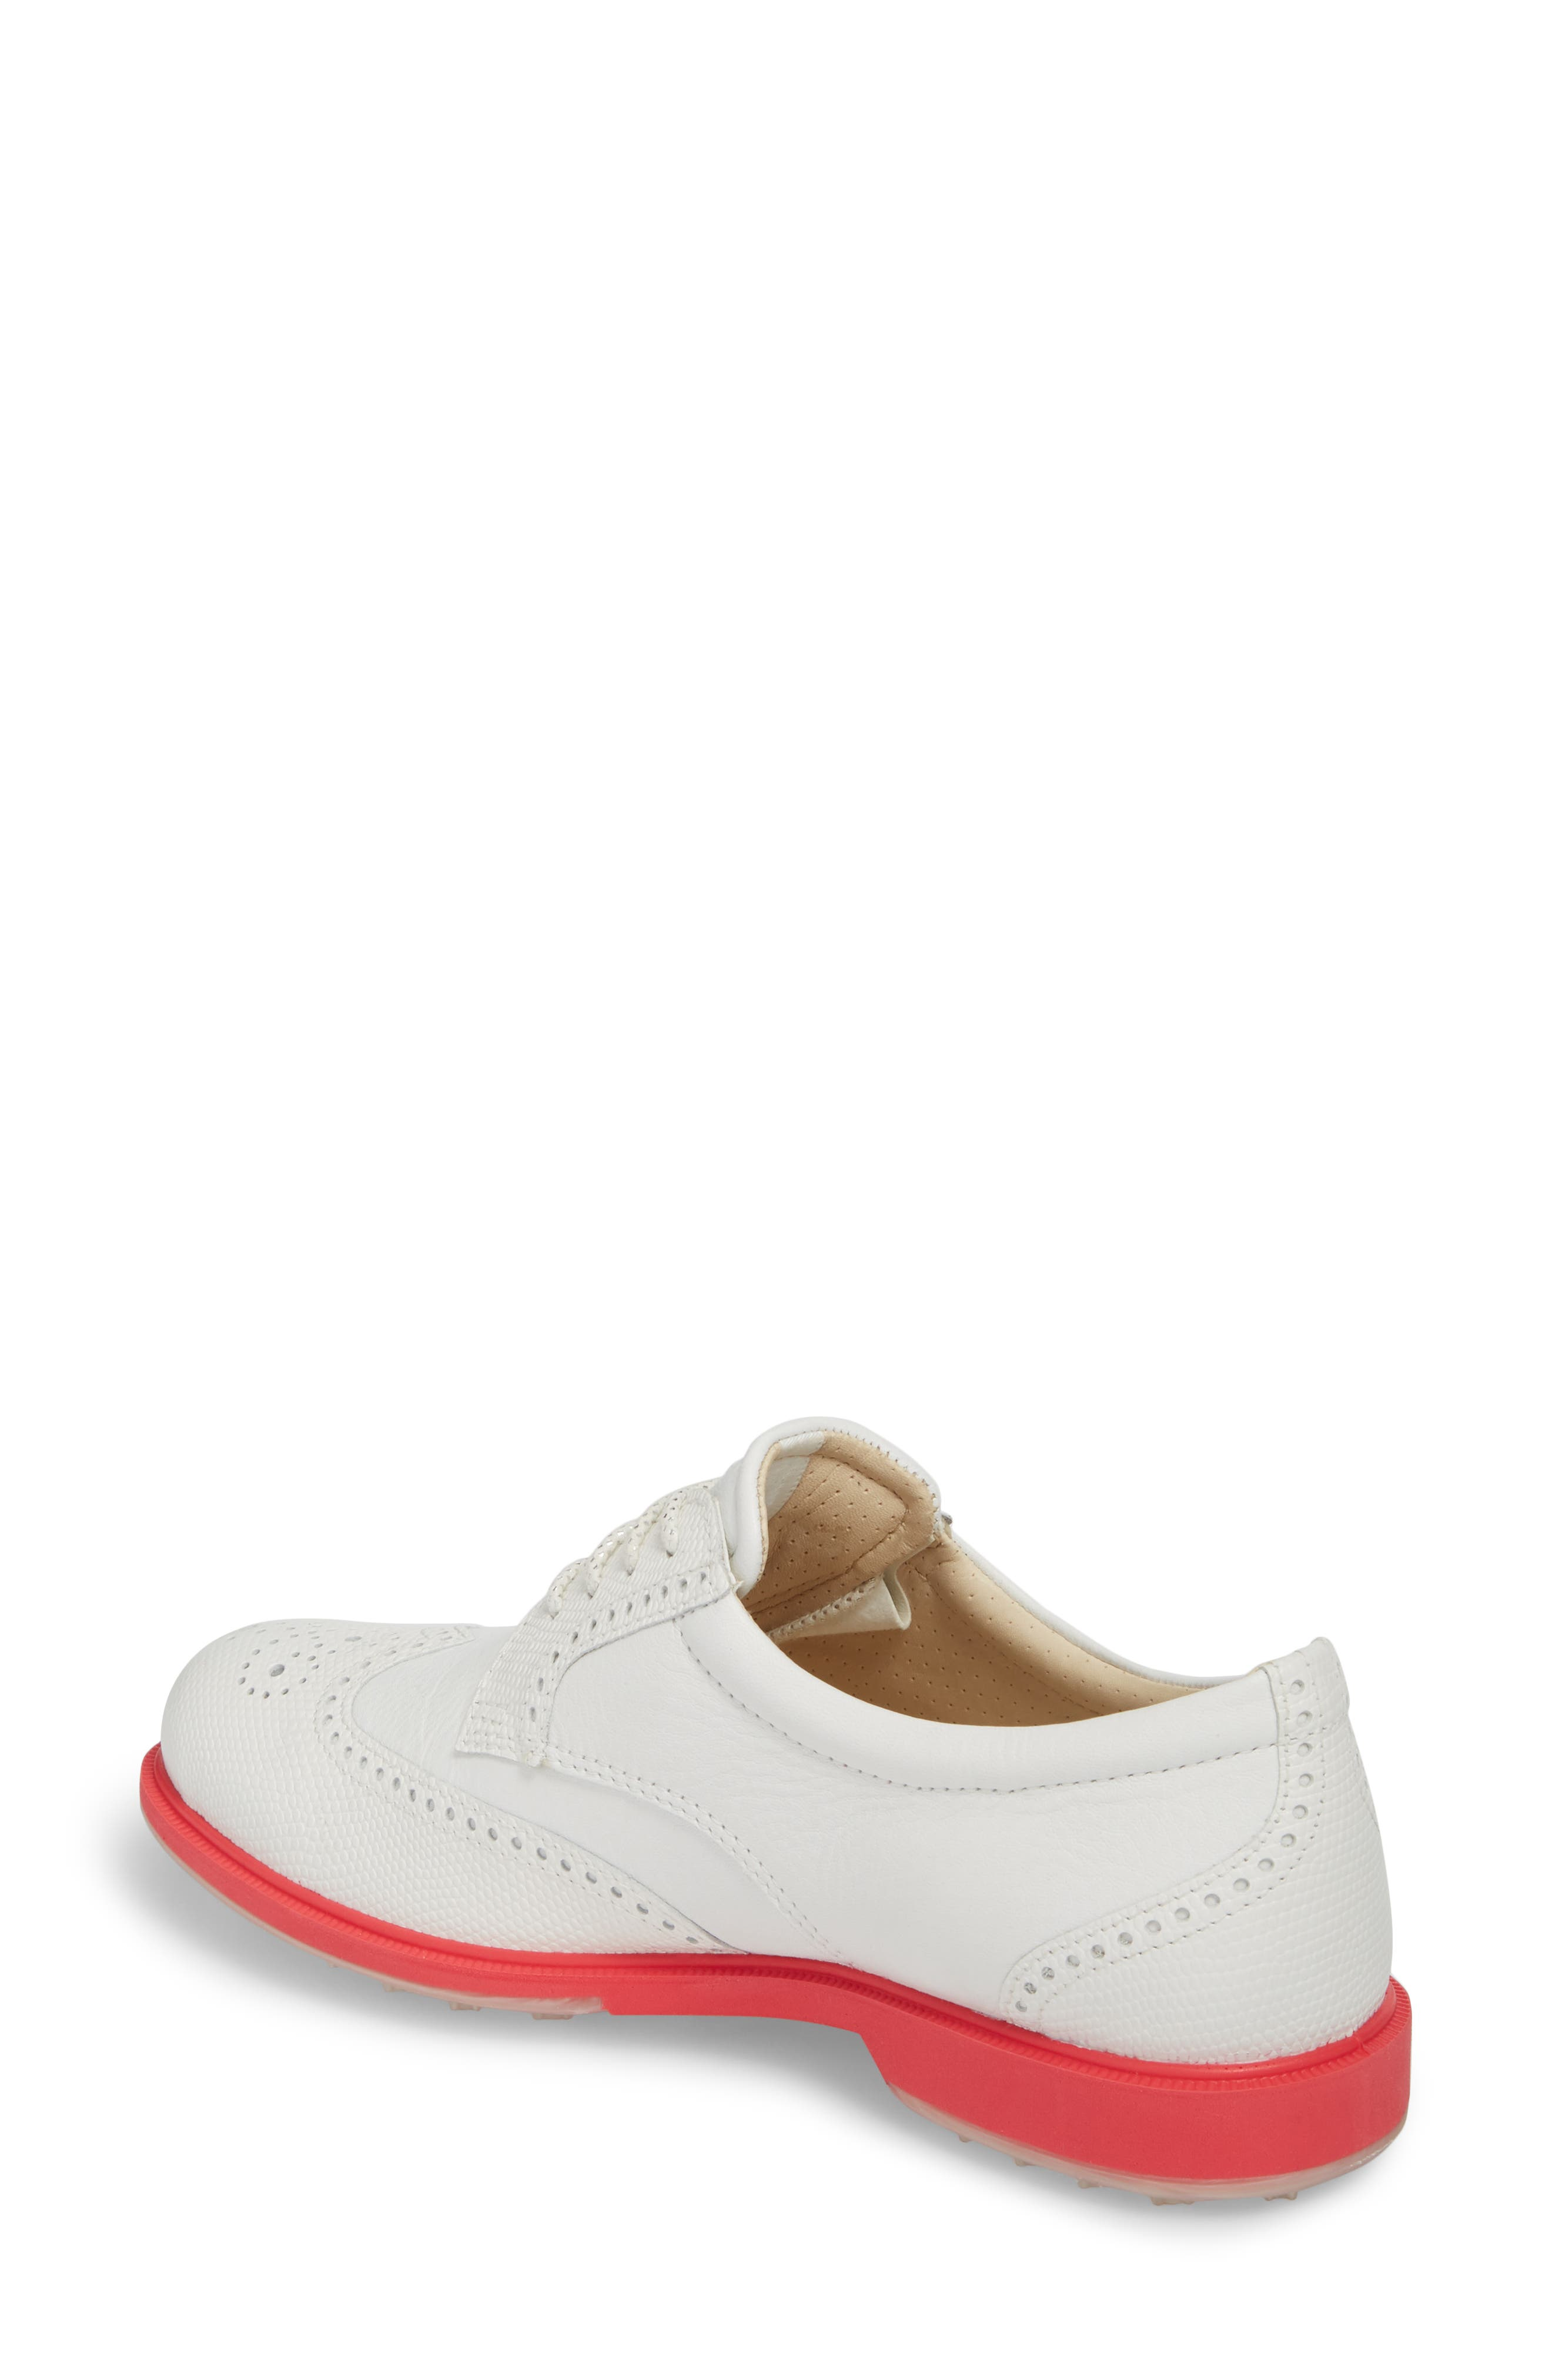 'Tour' Hybrid Wingtip Golf Shoe,                             Alternate thumbnail 2, color,                             WHITE LEATHER/ RED